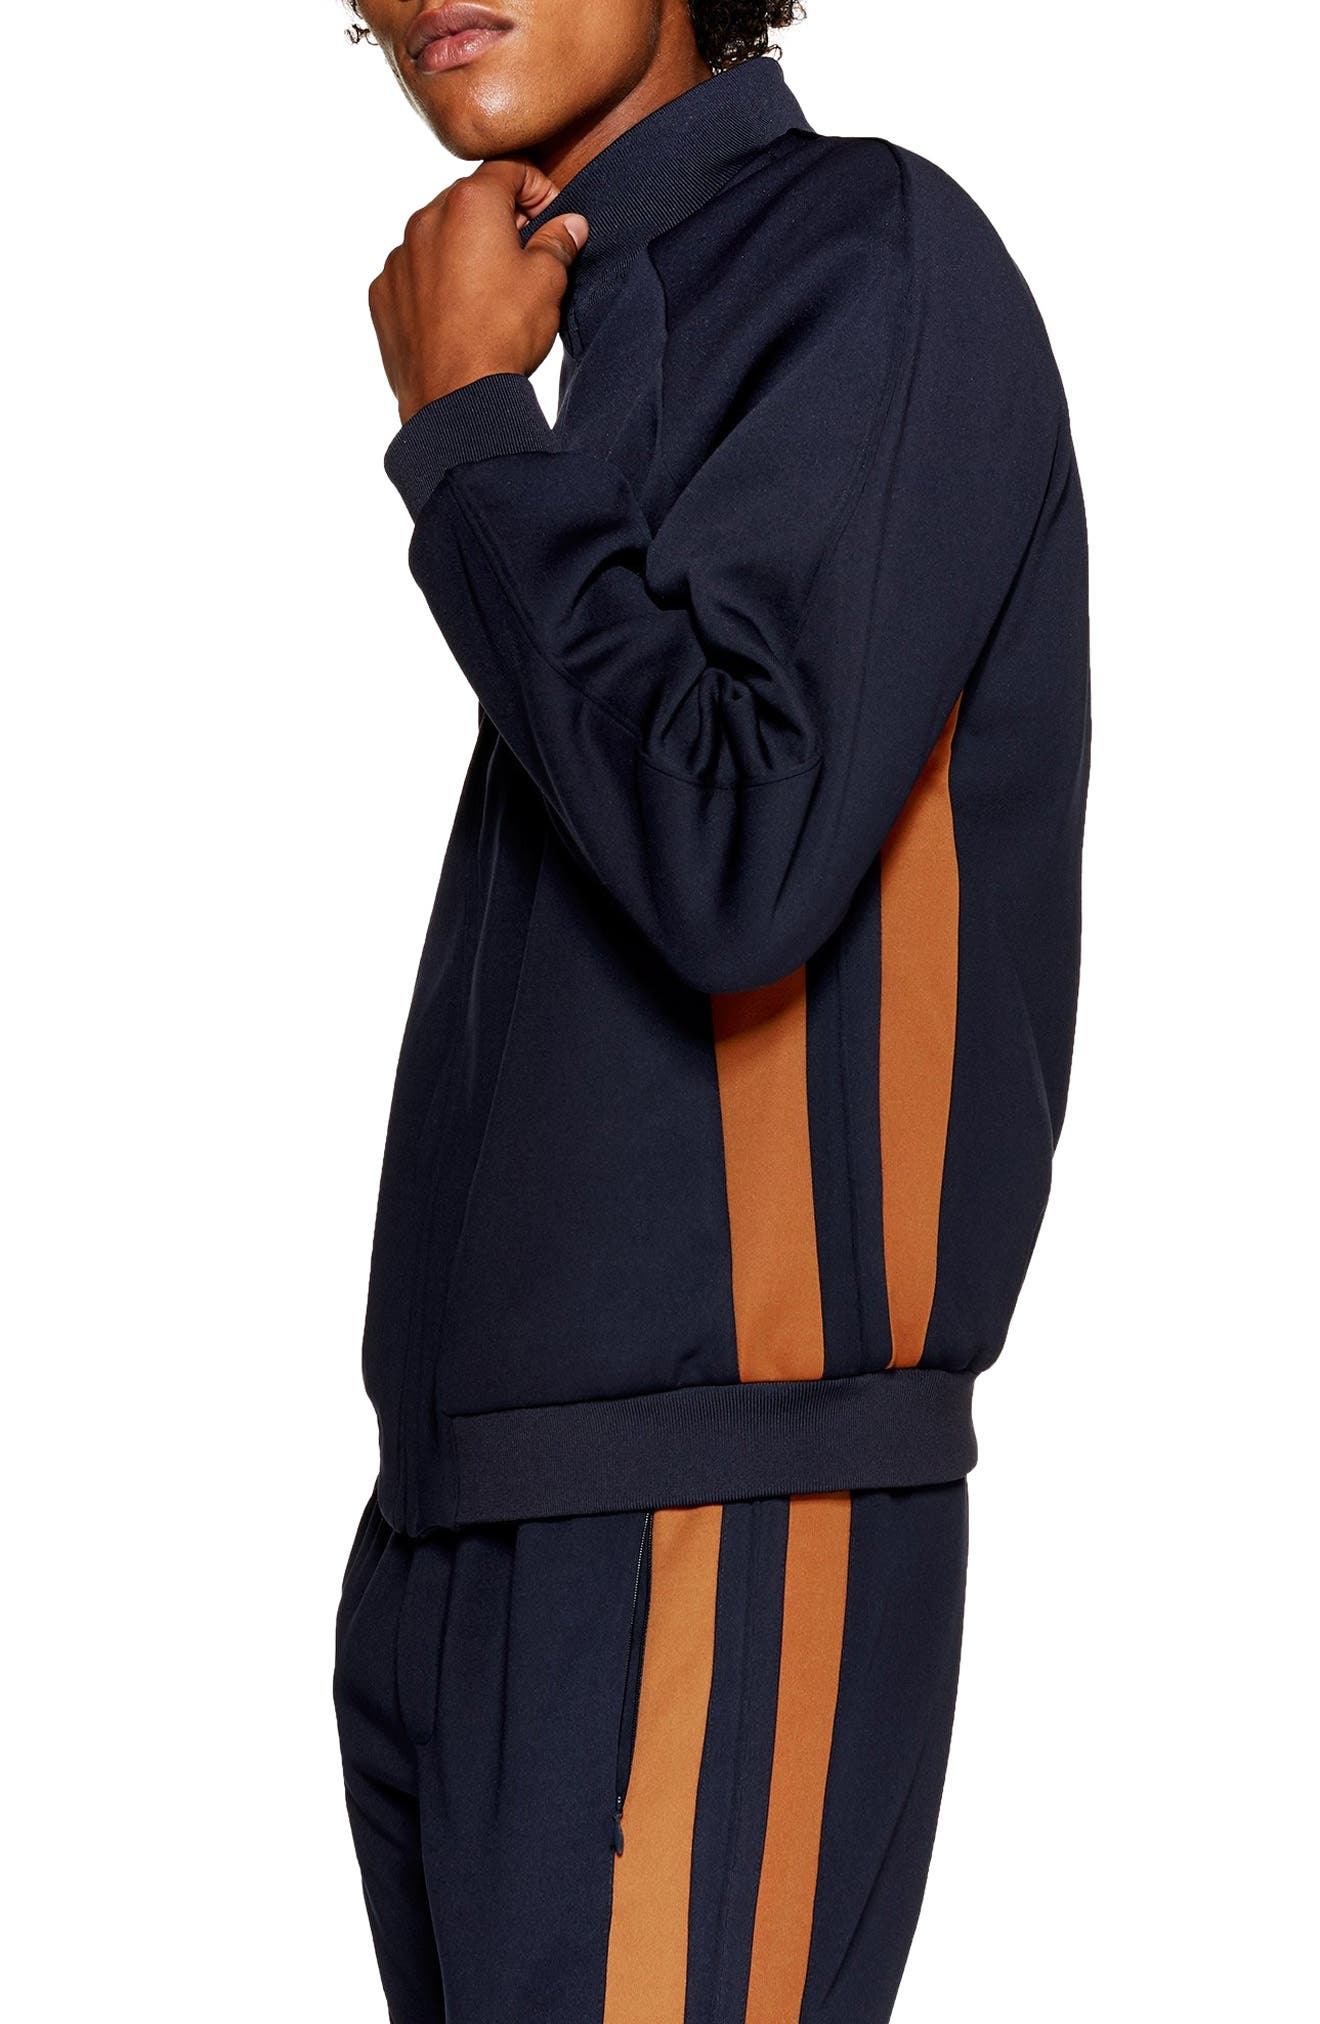 Domino Revere Zip Jacket,                             Alternate thumbnail 4, color,                             NAVY BLUE